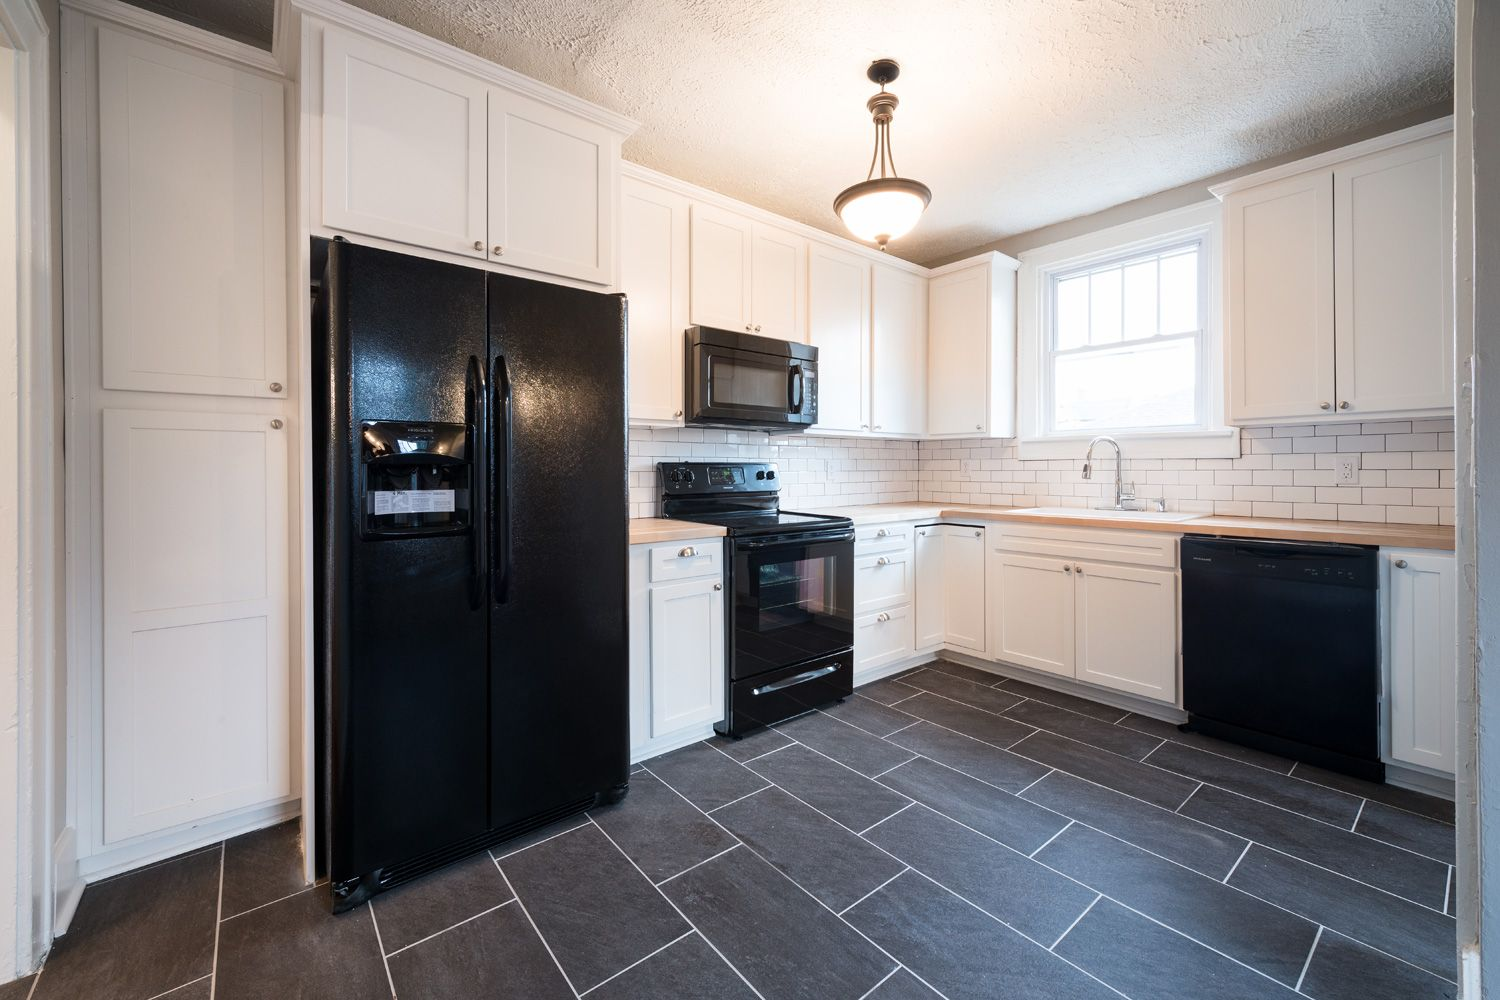 Kitchen Remodel; Indianapolis, IN; Porcelain Floor Tile; Black Appliances;  White Cabinets